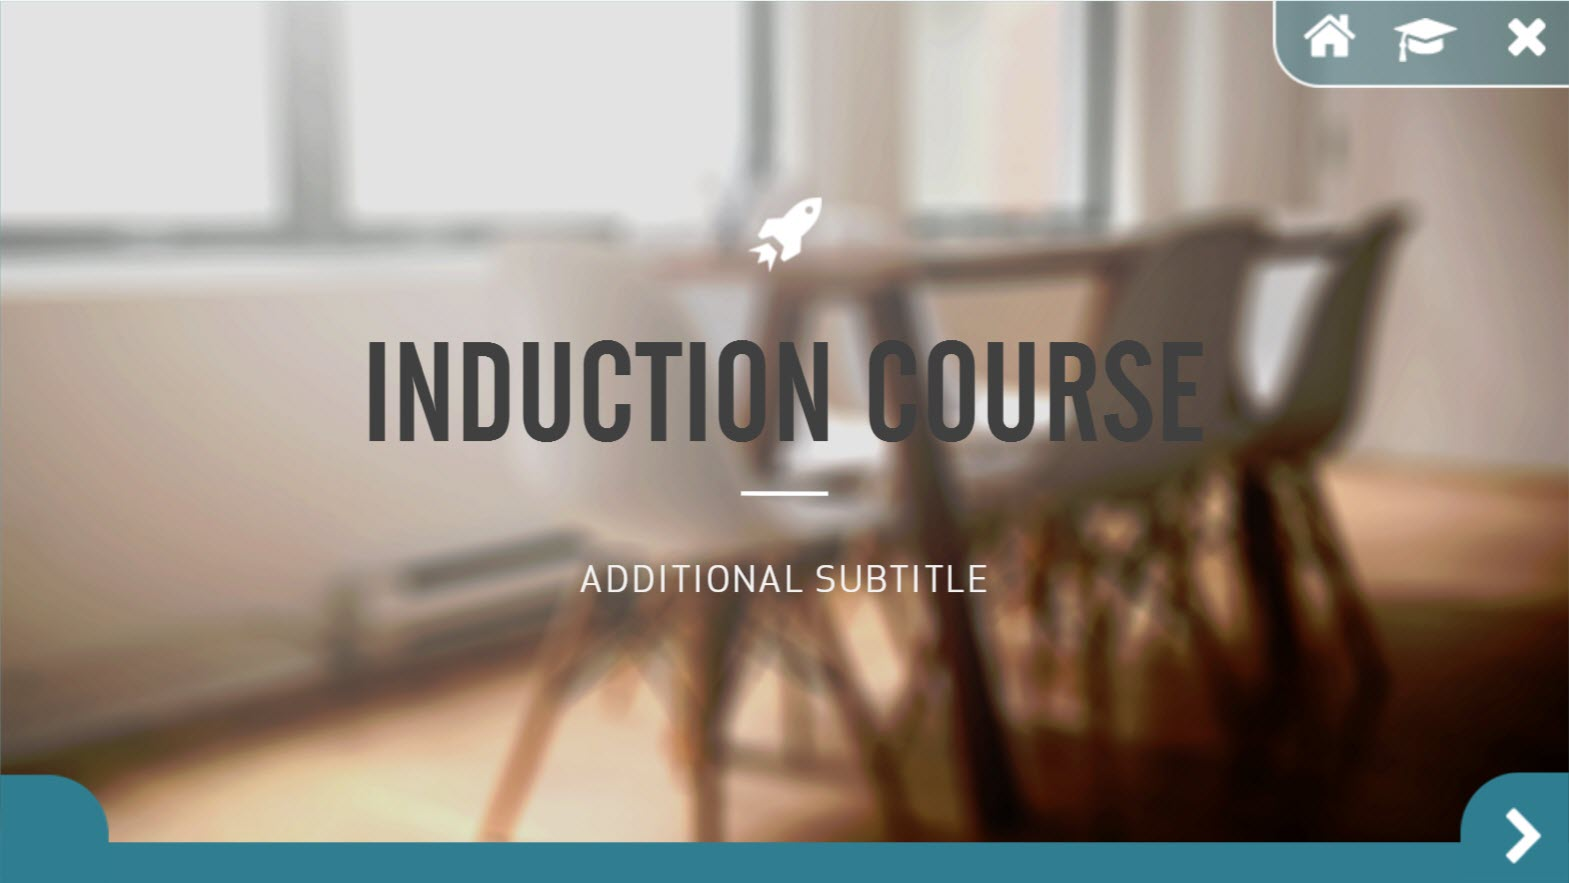 Induction Course SL360 template